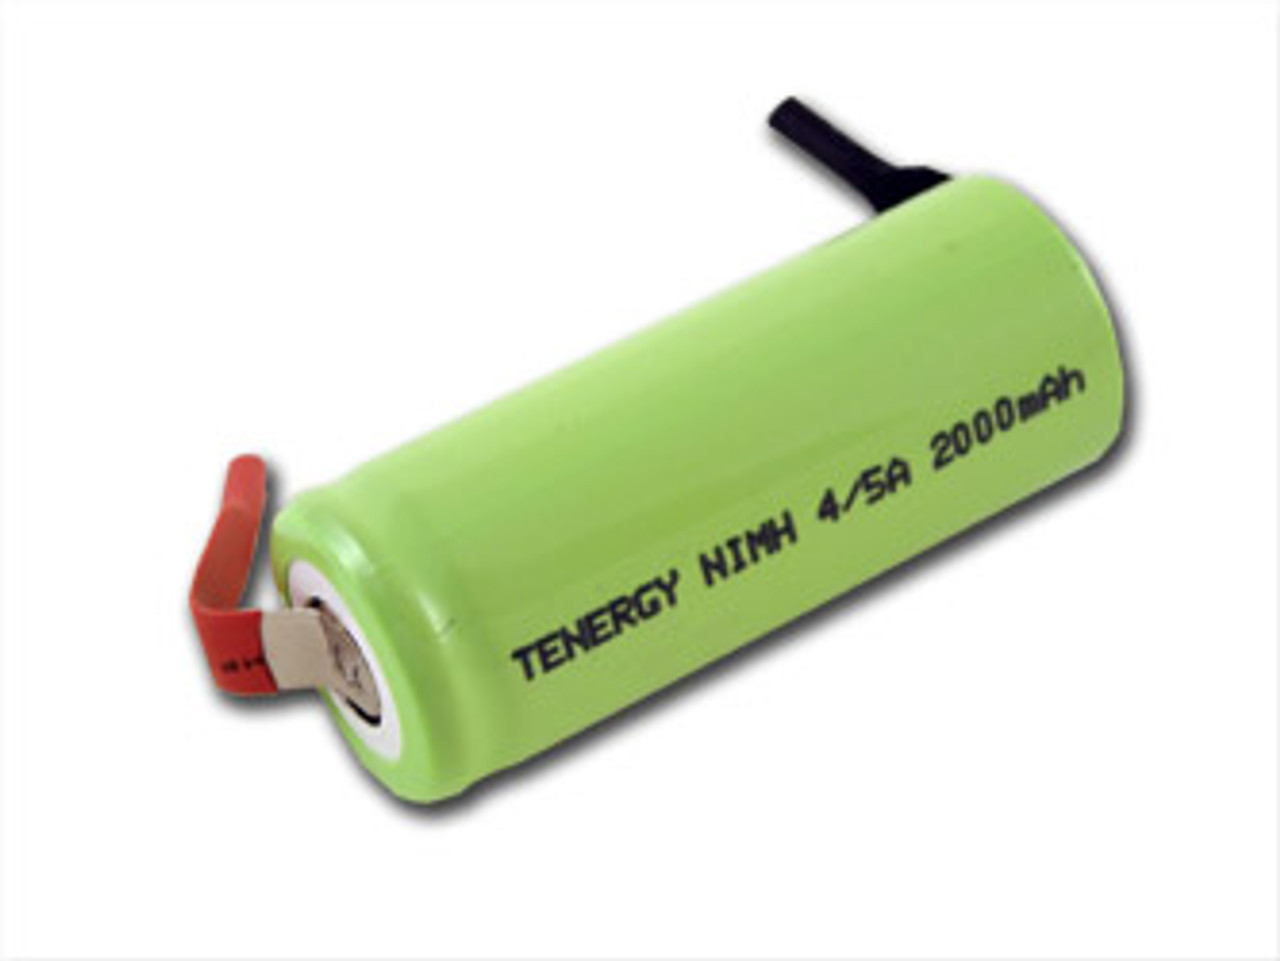 Tenergy 4/5A 2000mAh NiMH Flat Top Rechargeable Battery